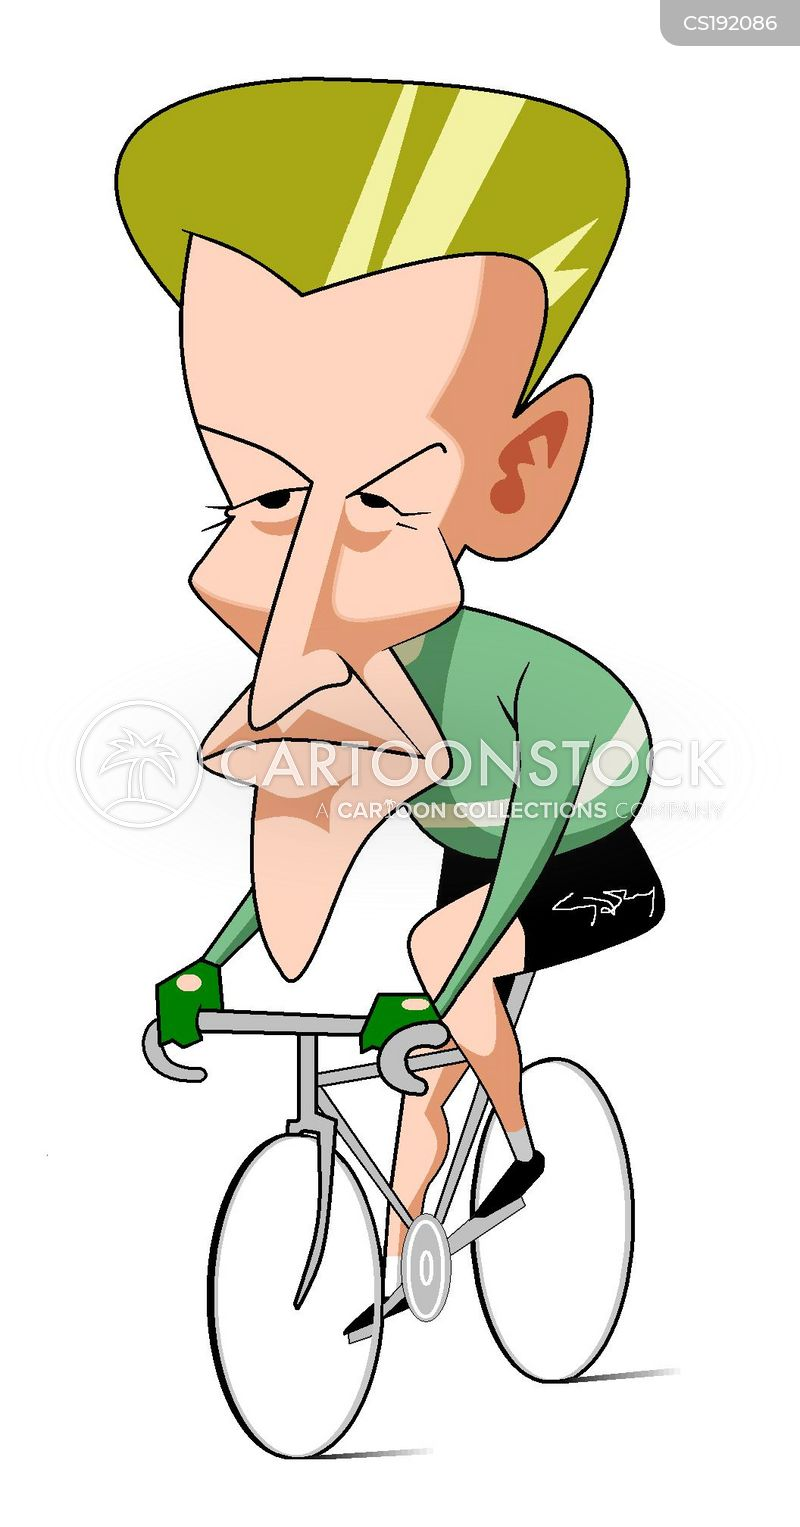 tour de france cartoon